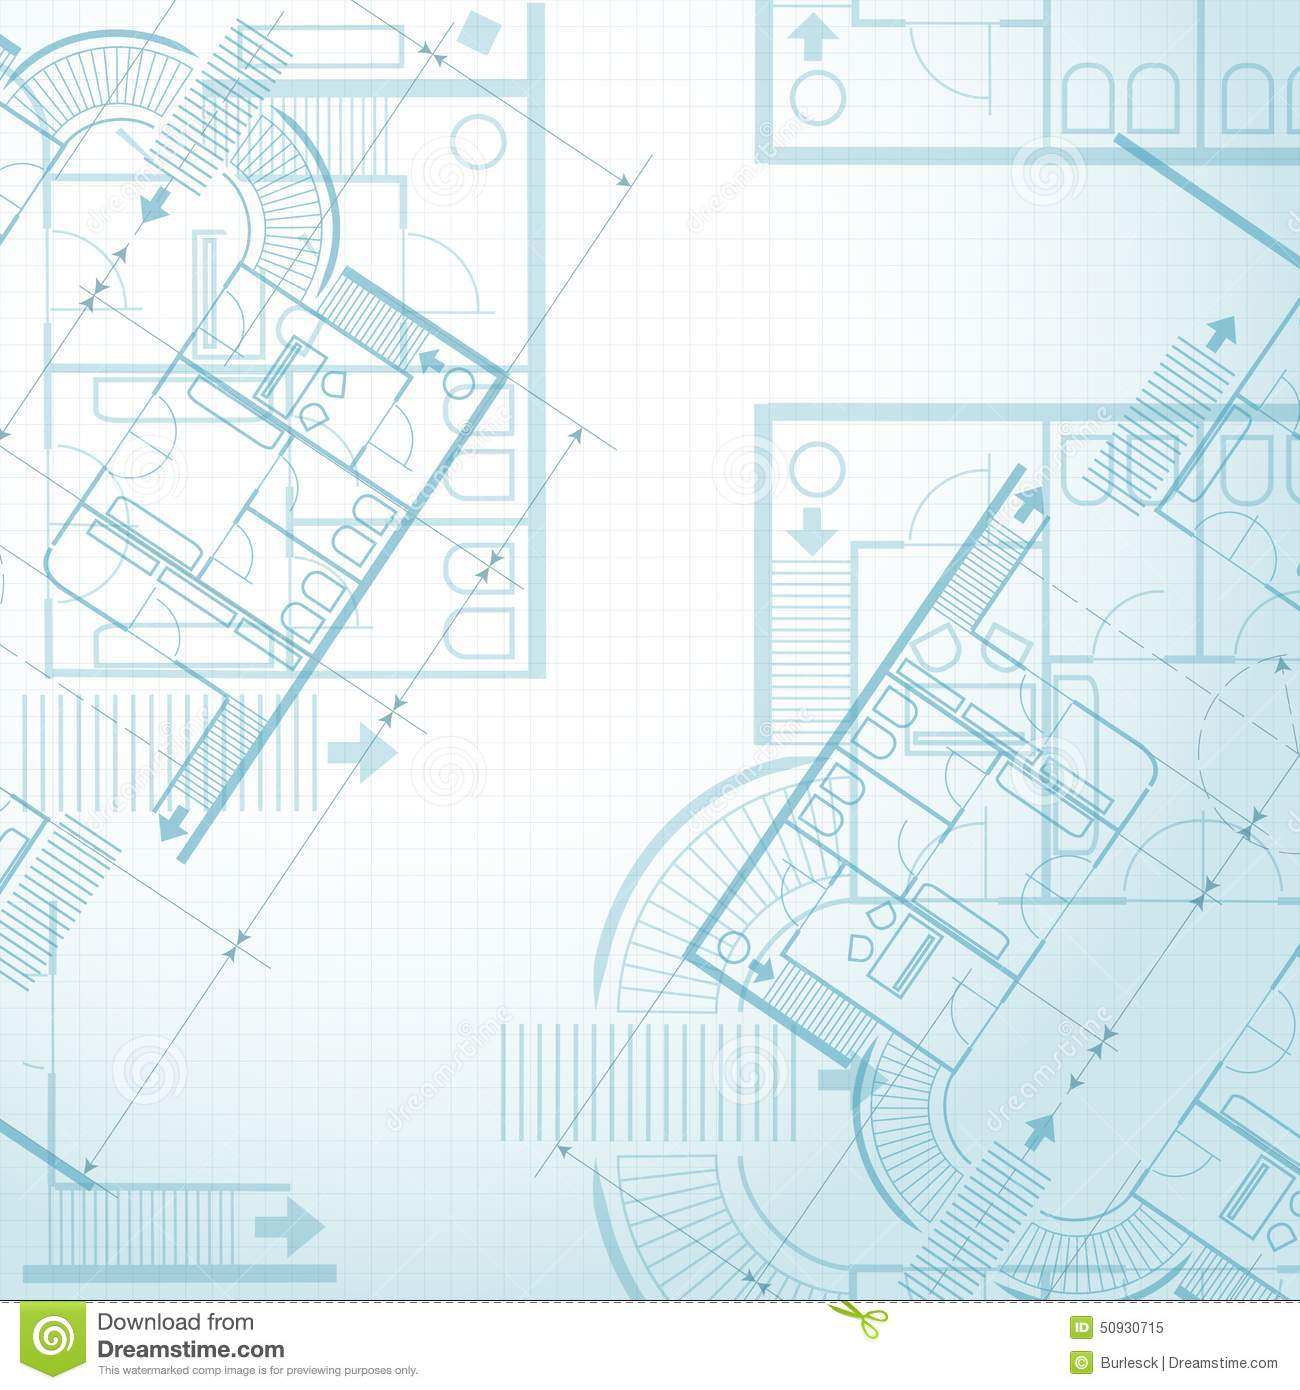 Architectural plan background stock vector illustration of architectural plan background malvernweather Images